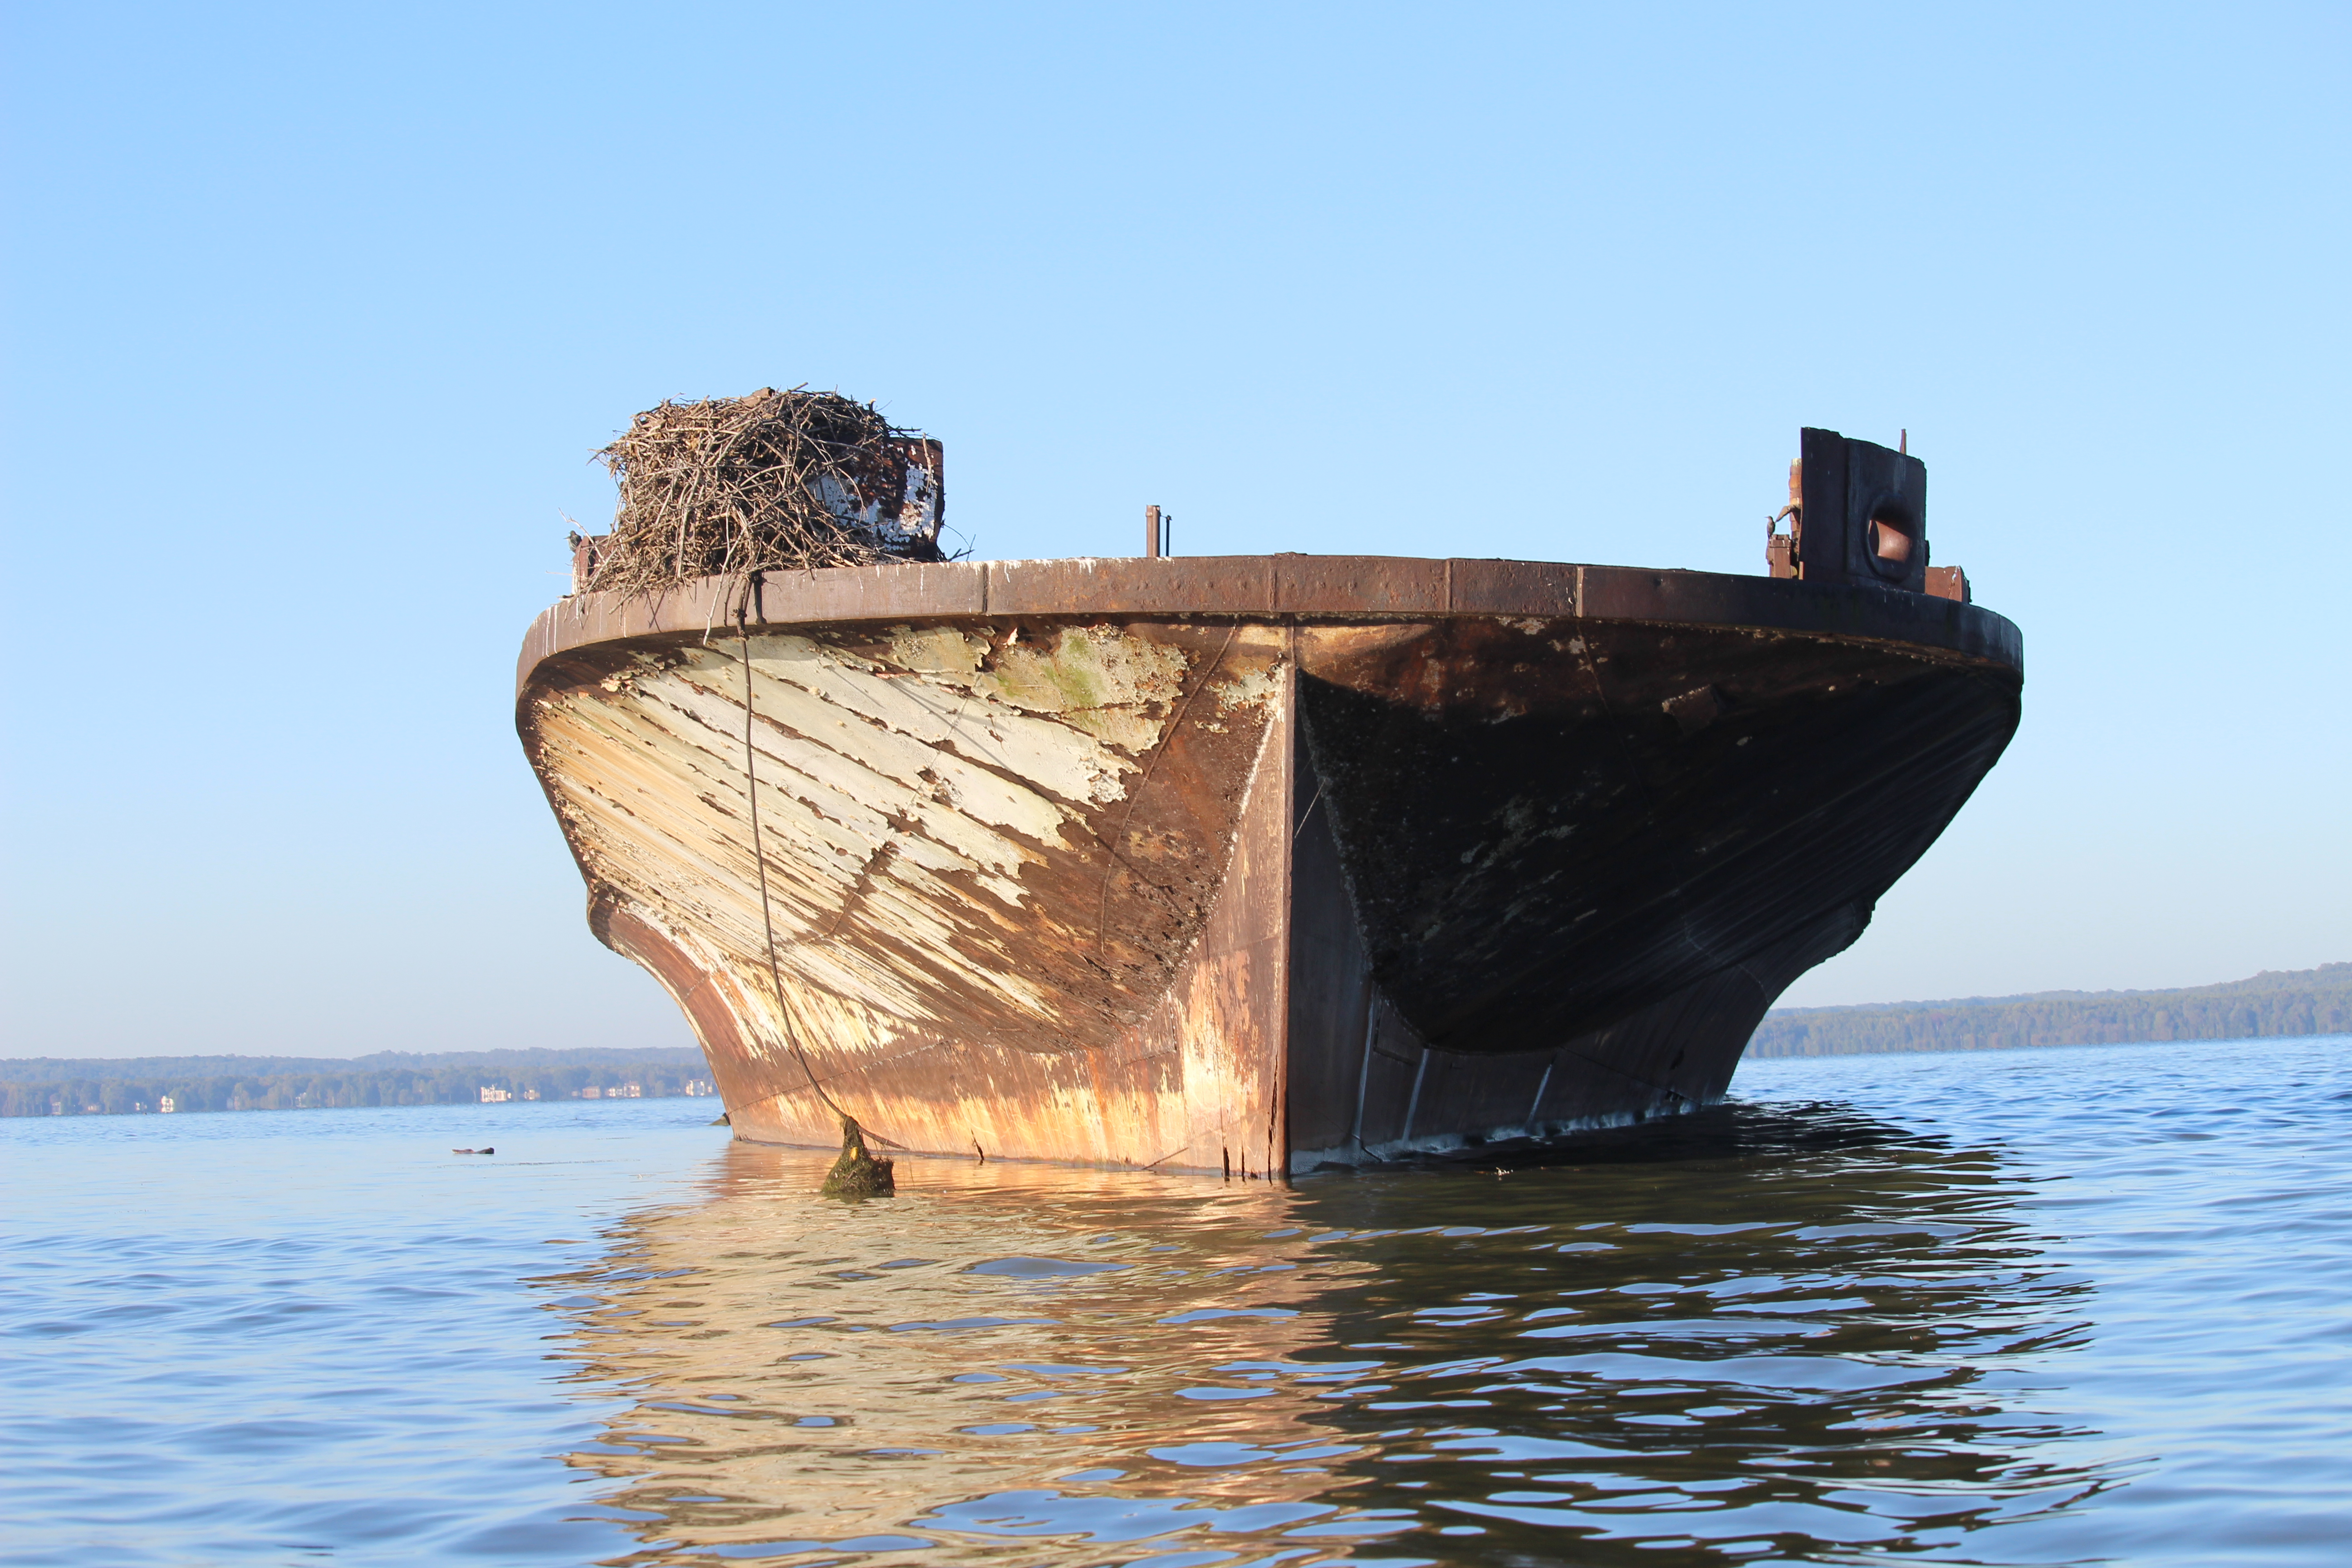 'Ghost fleet' offers treasure trove of wildlife, history in the Potomac (Photos)